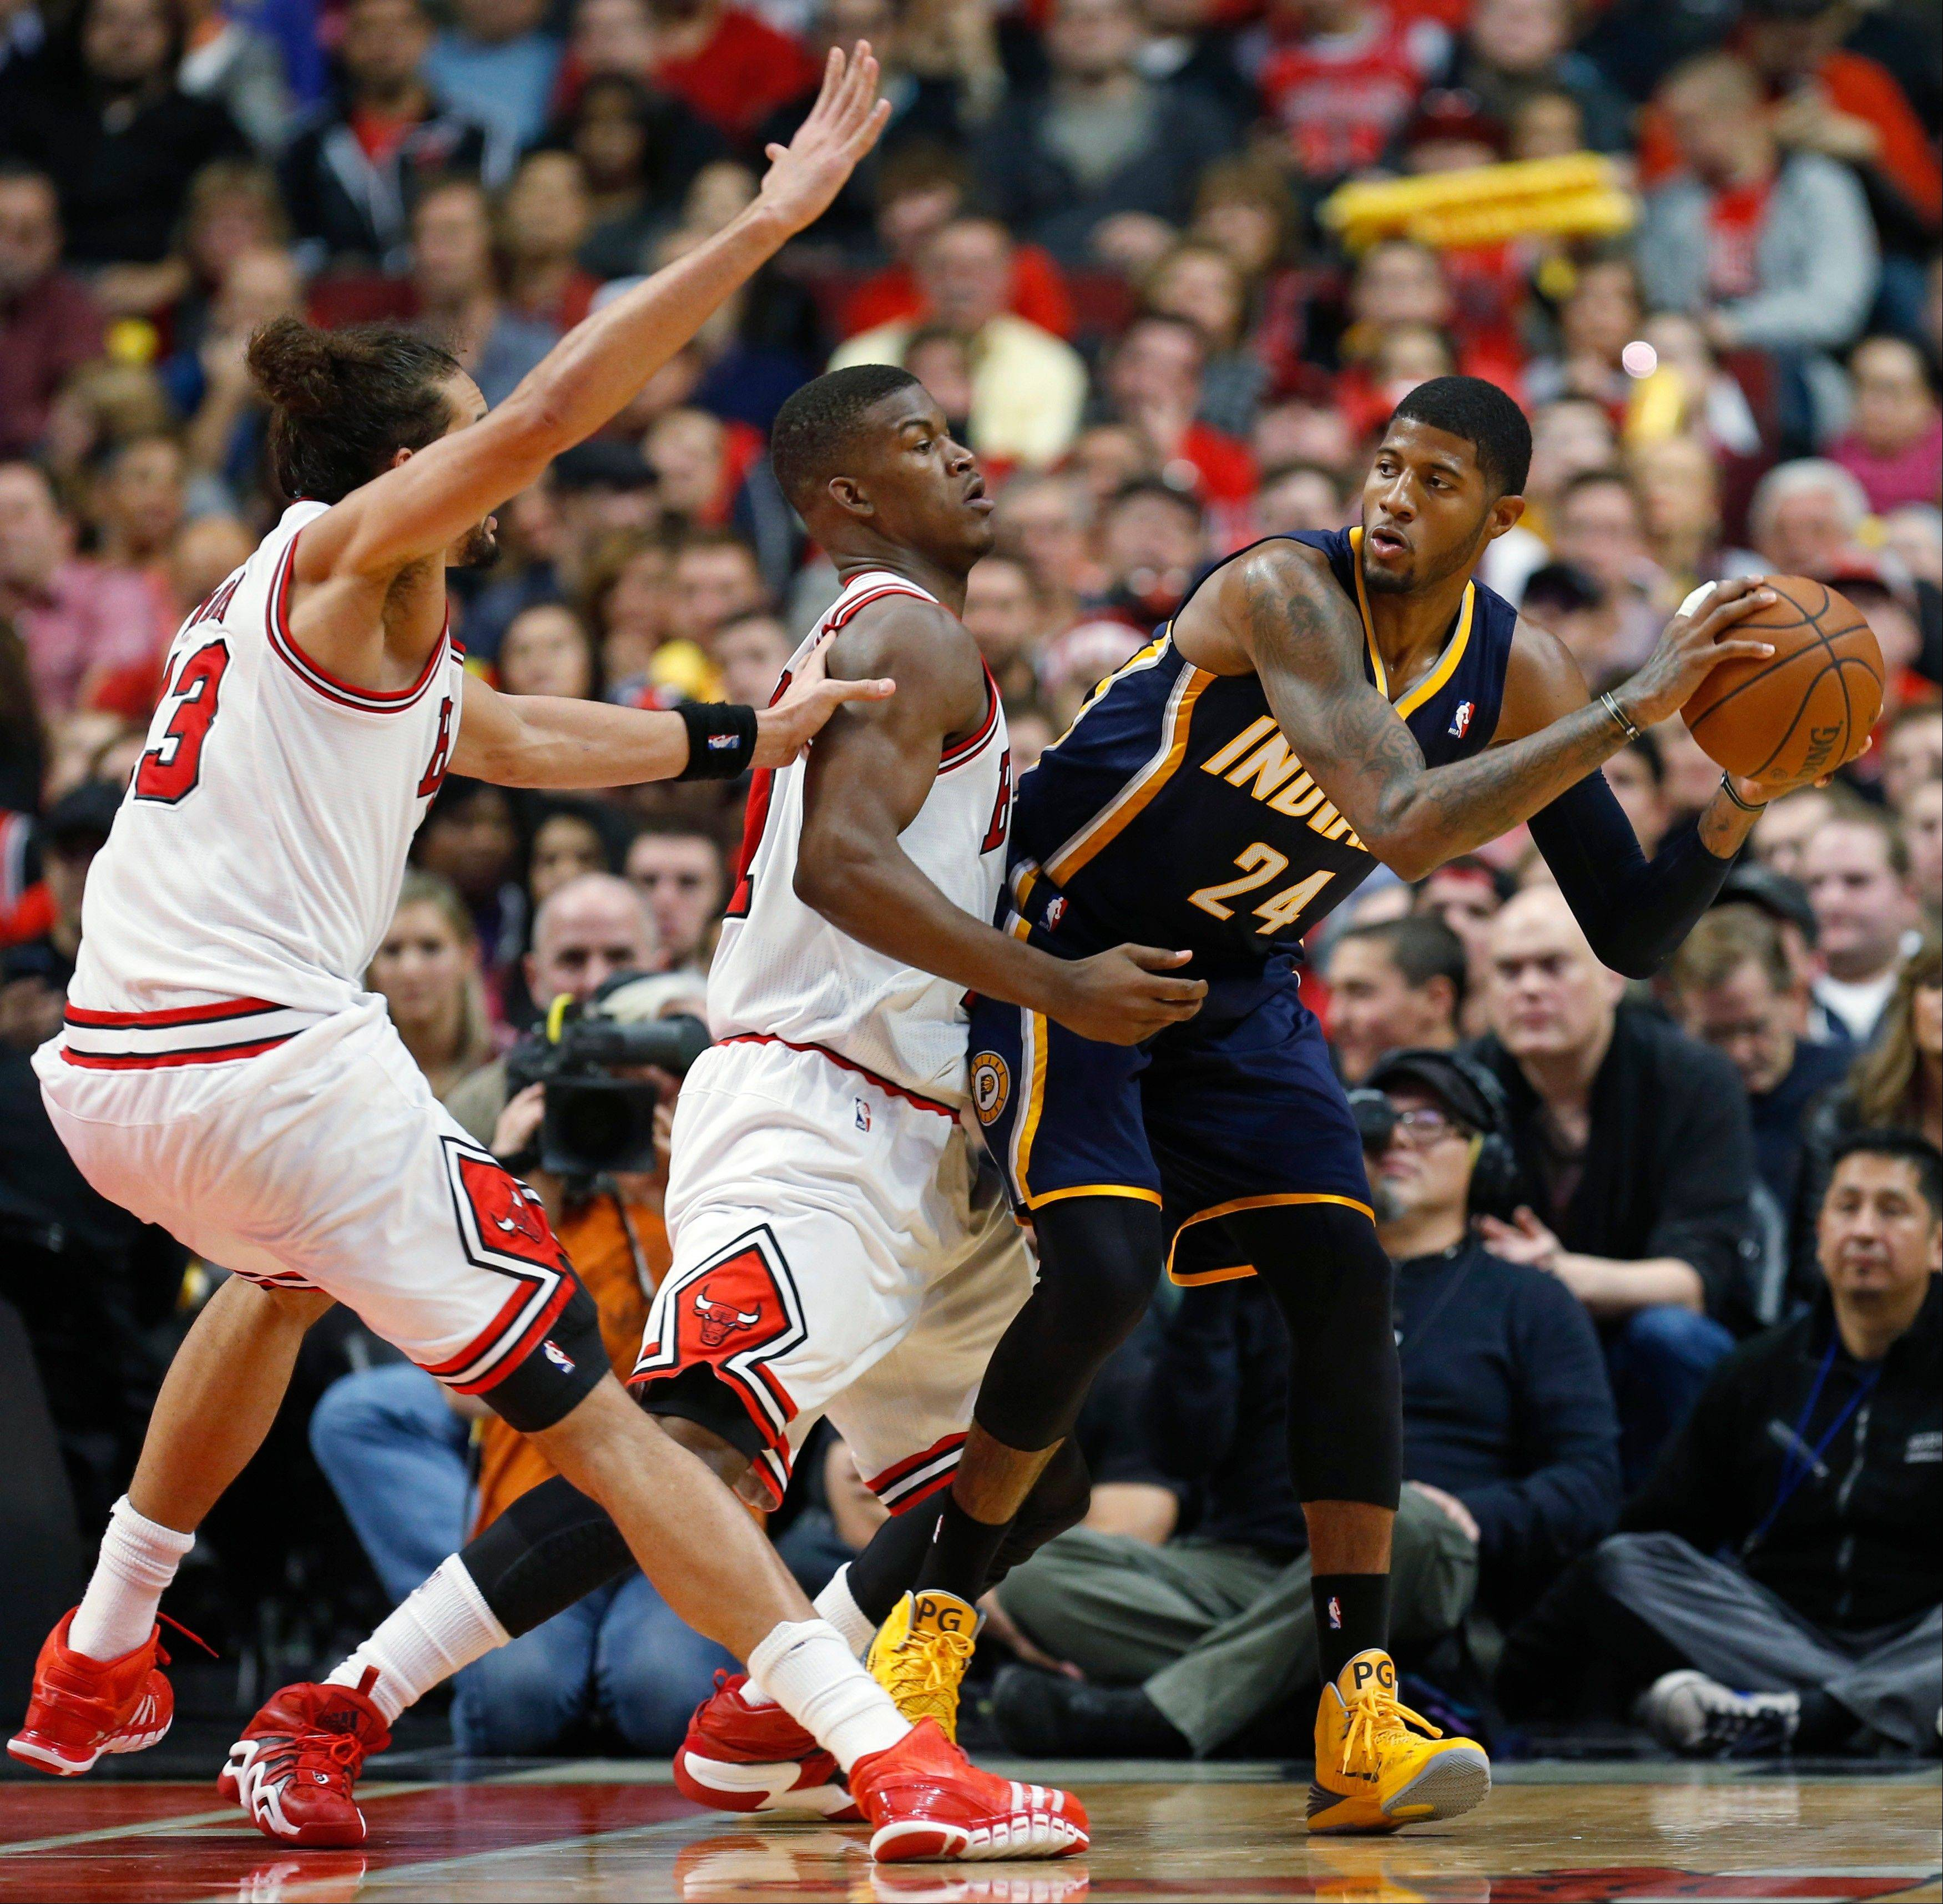 Pacers forward Paul George is defended by Bulls guard Jimmy Butler, middle, and center Joakim Noah during Saturday's Bulls victory. It would benefit either of these teams to get the No. 1 seed in the East.